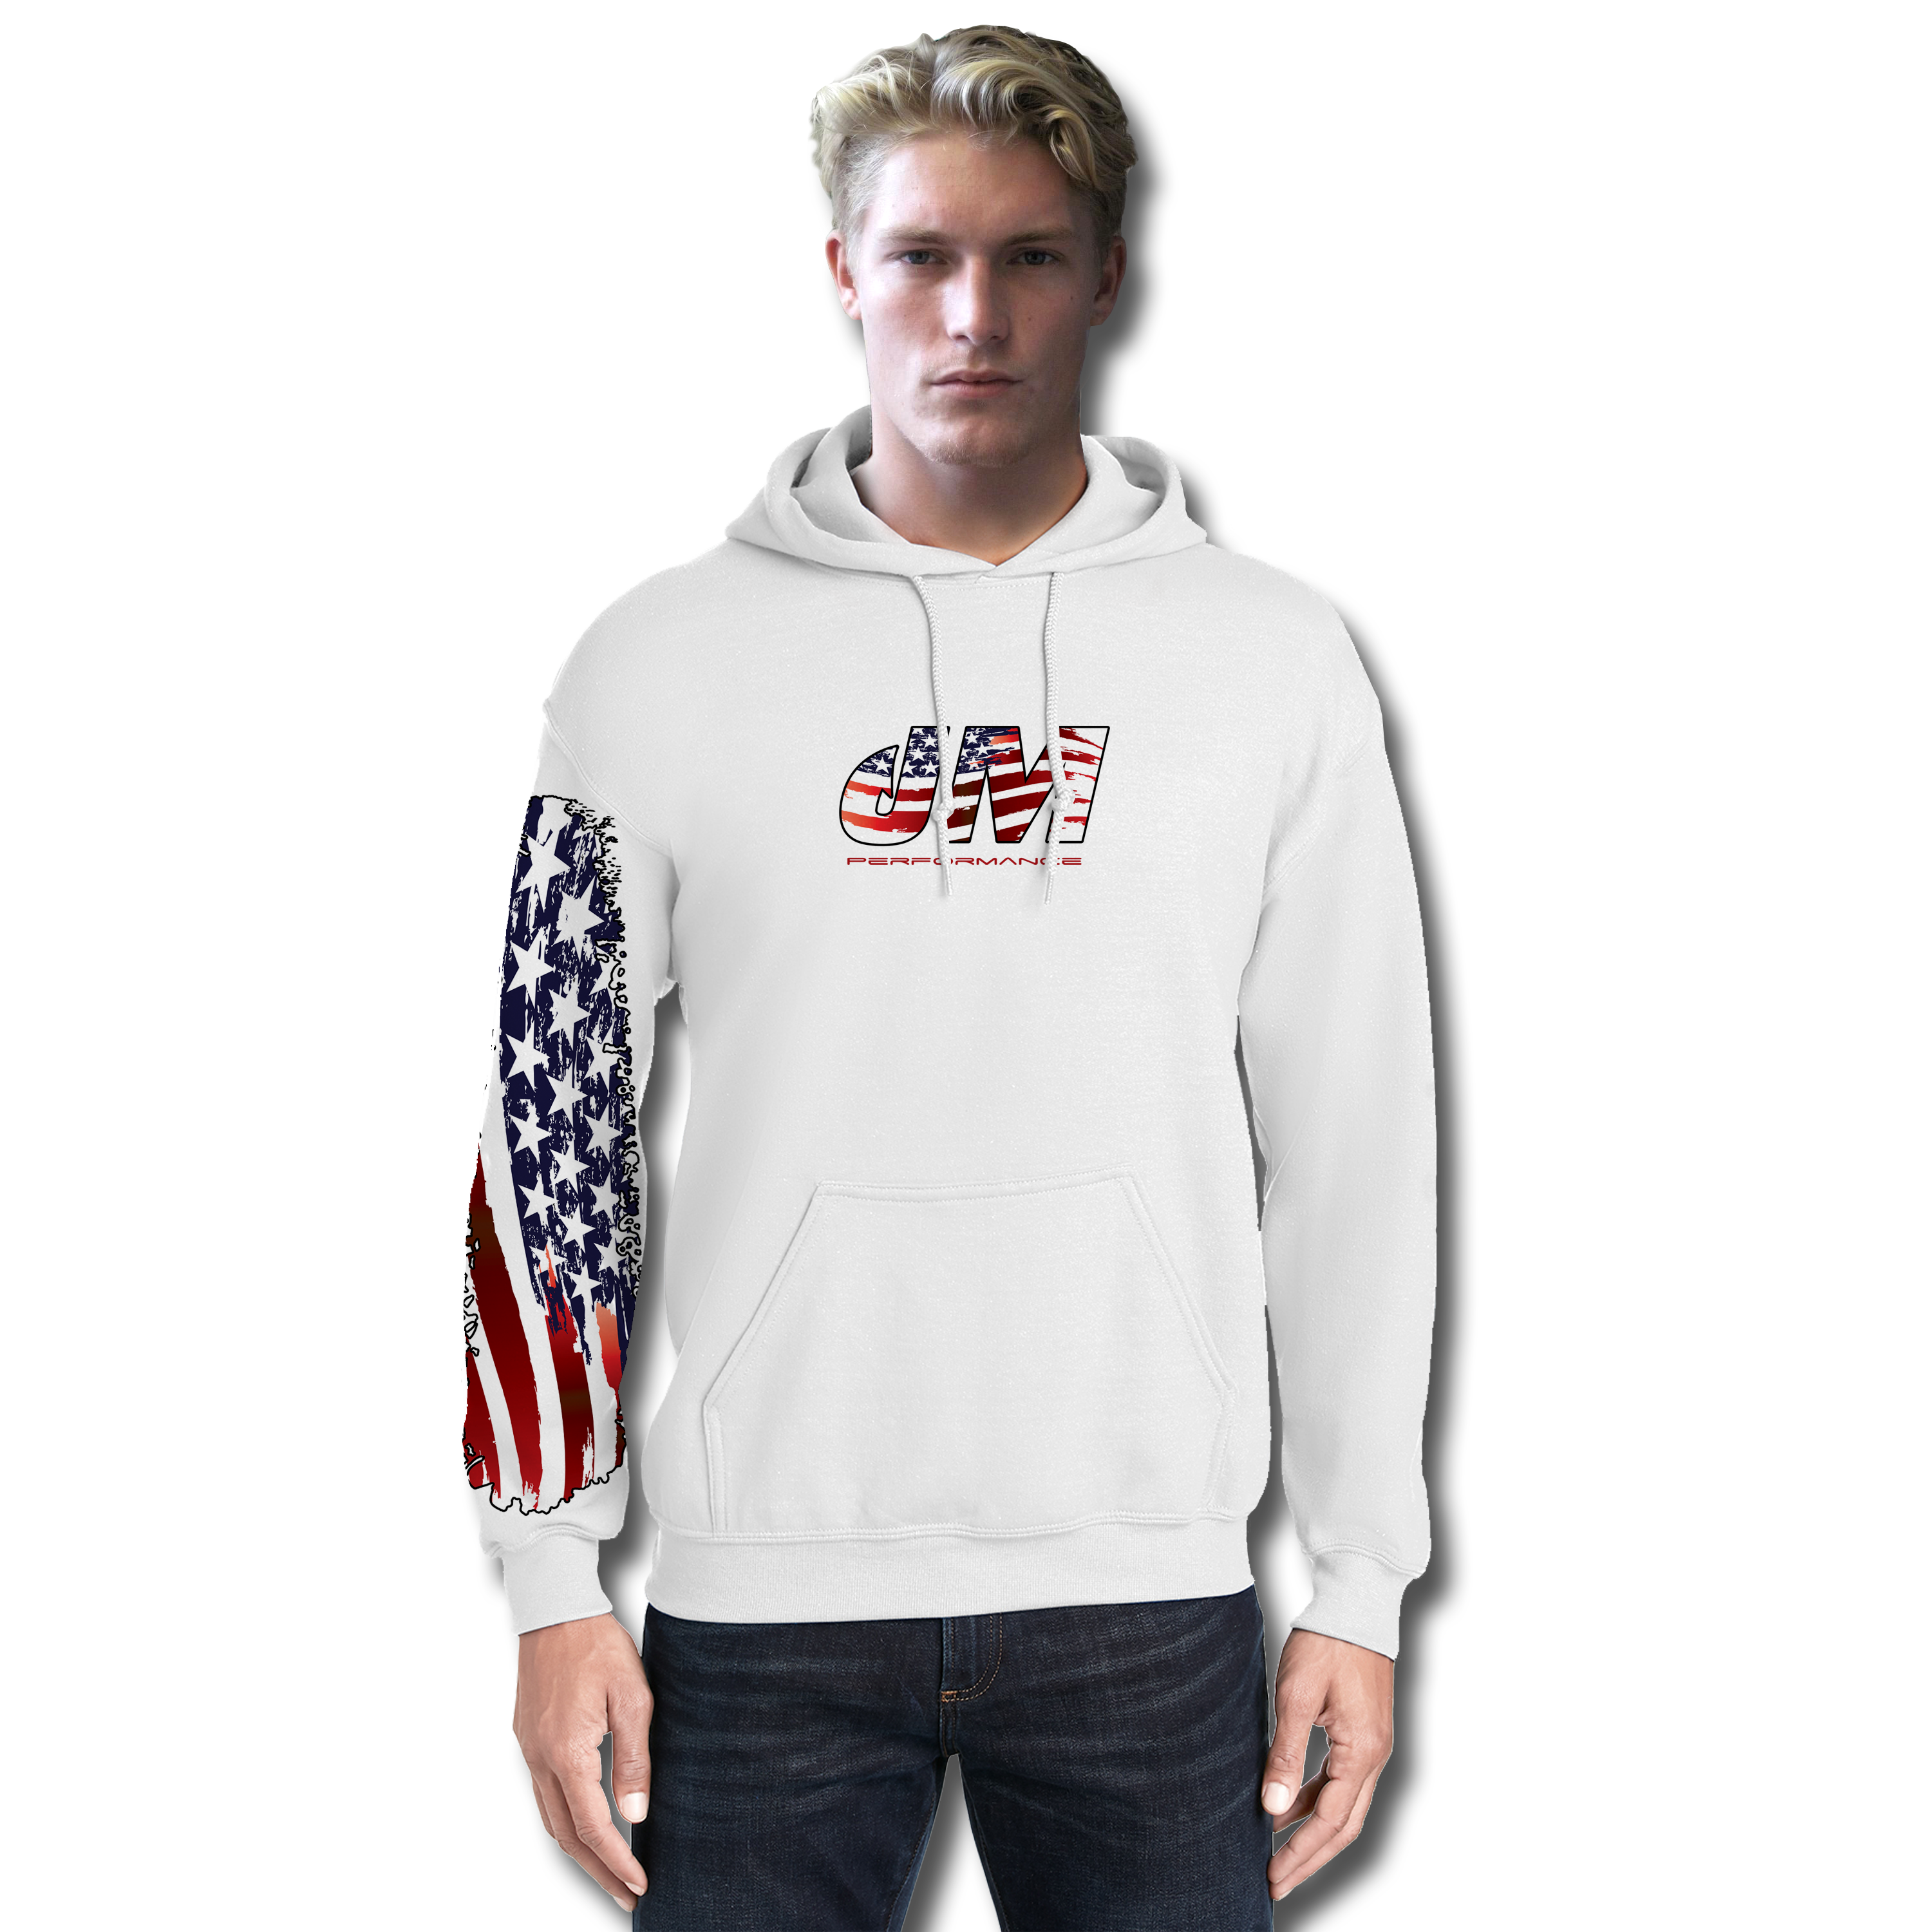 jmfh041-american-flag-bass-fleece-hoodie-white-front.png